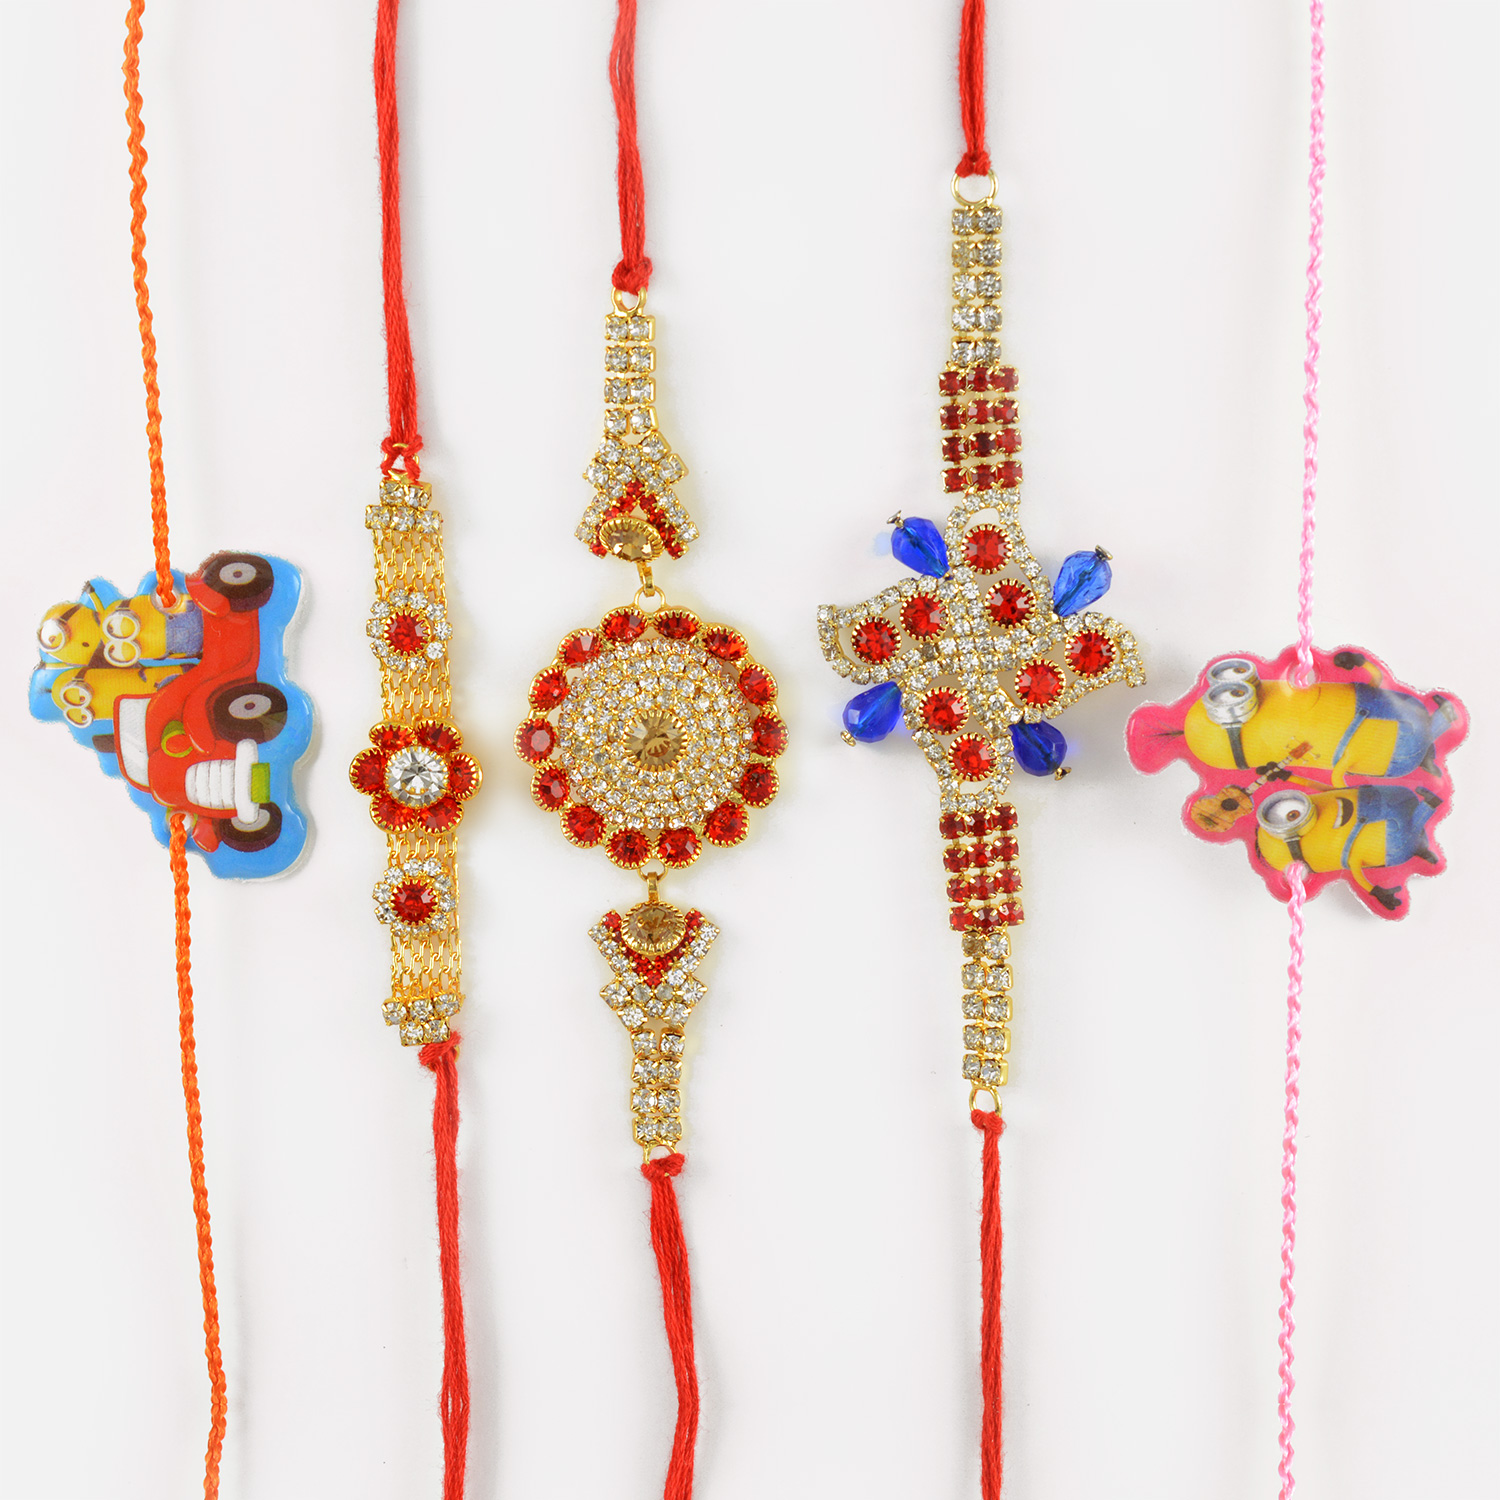 Authentic Diamond and Twin Rakhi for Kids in a Set of 5 Rakhis